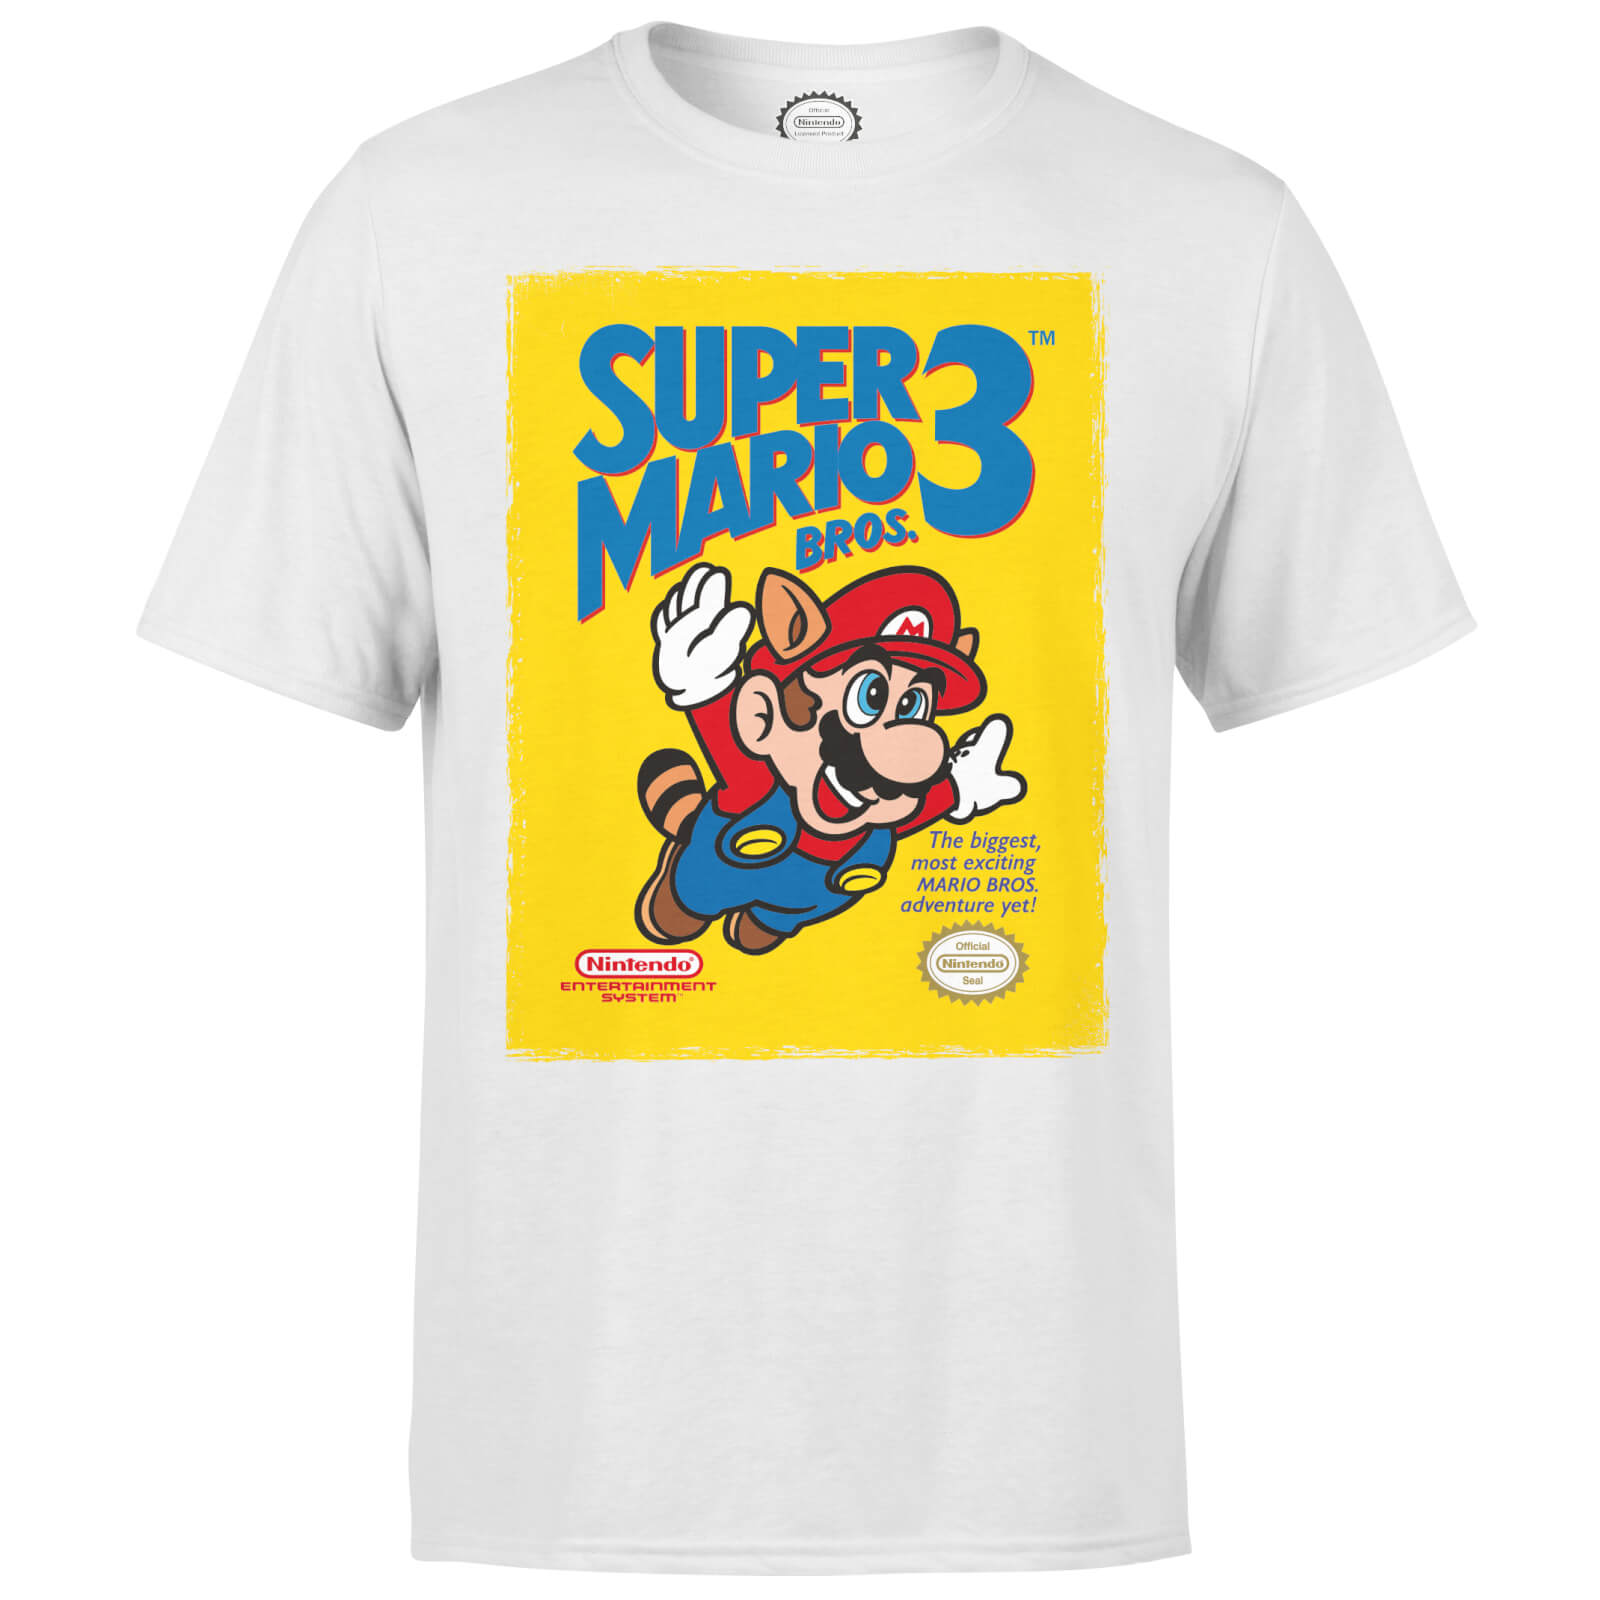 Nintendo Super Mario Bros 3 Men